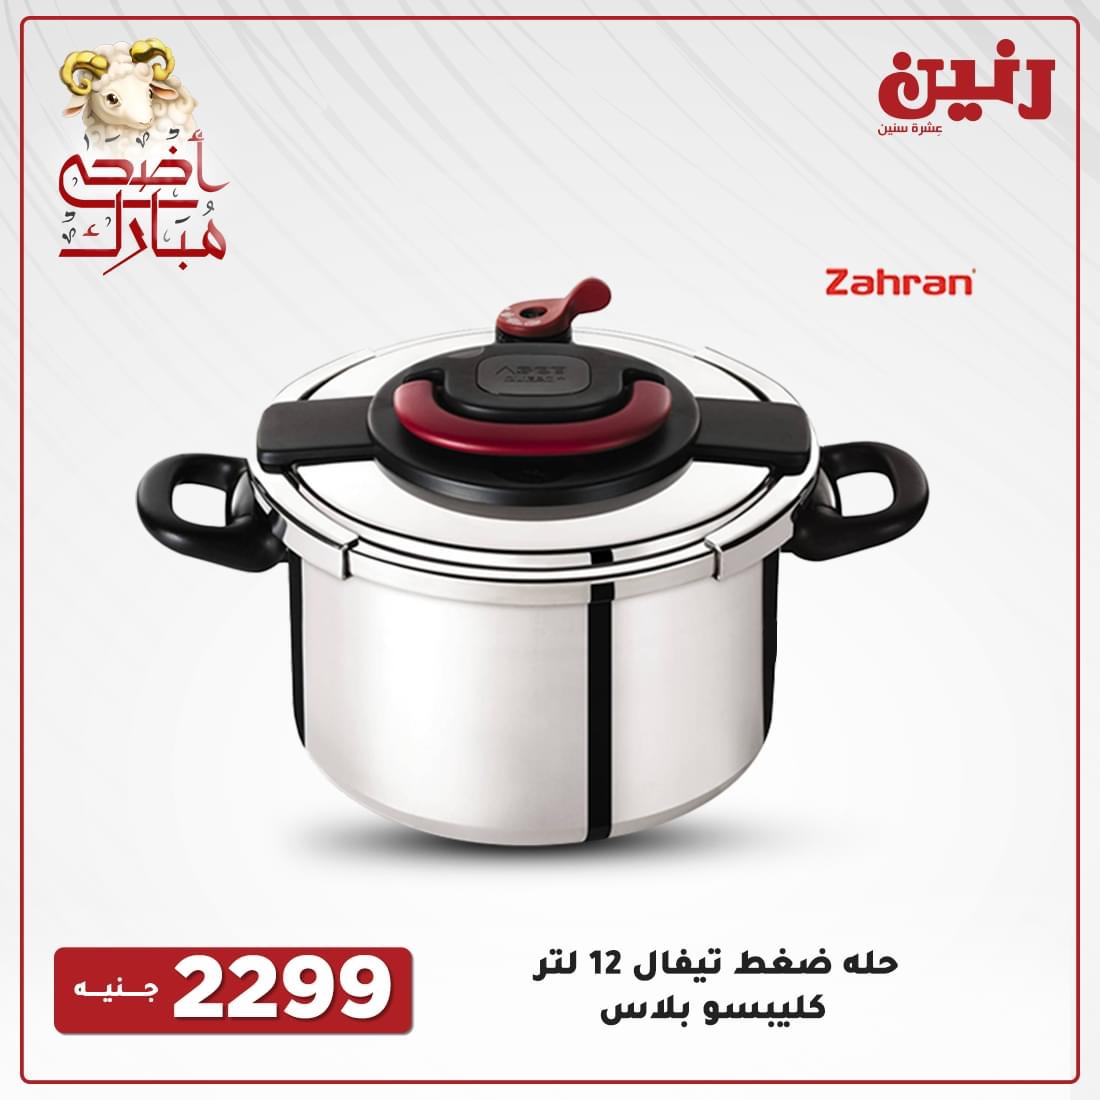 Raneen offers today for appliances and household appliances from July 22 to 24, 2021 29